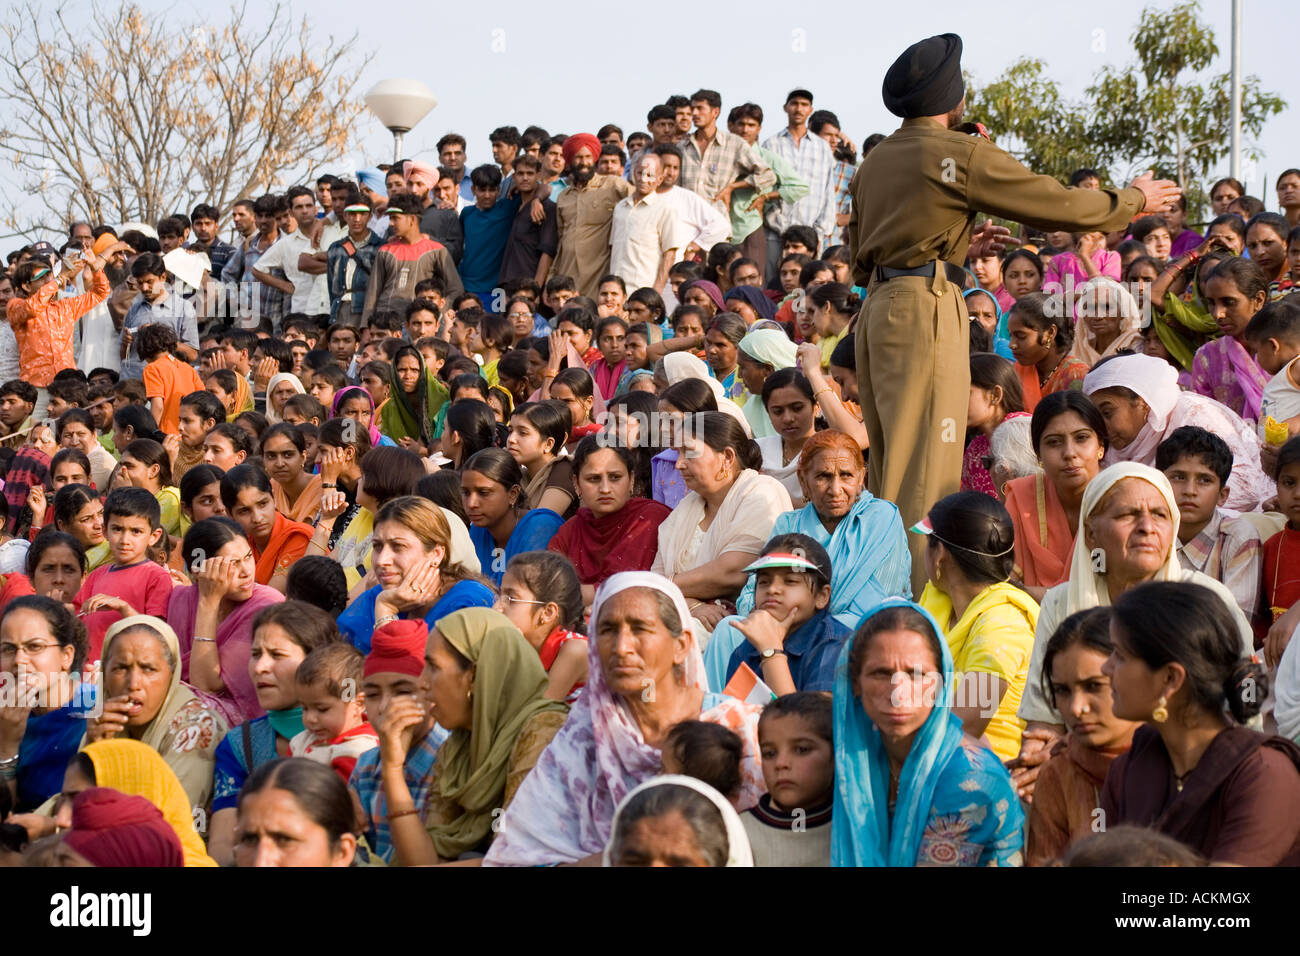 Segregated male and female Indian audience at the Wagah Gate - Stock Image